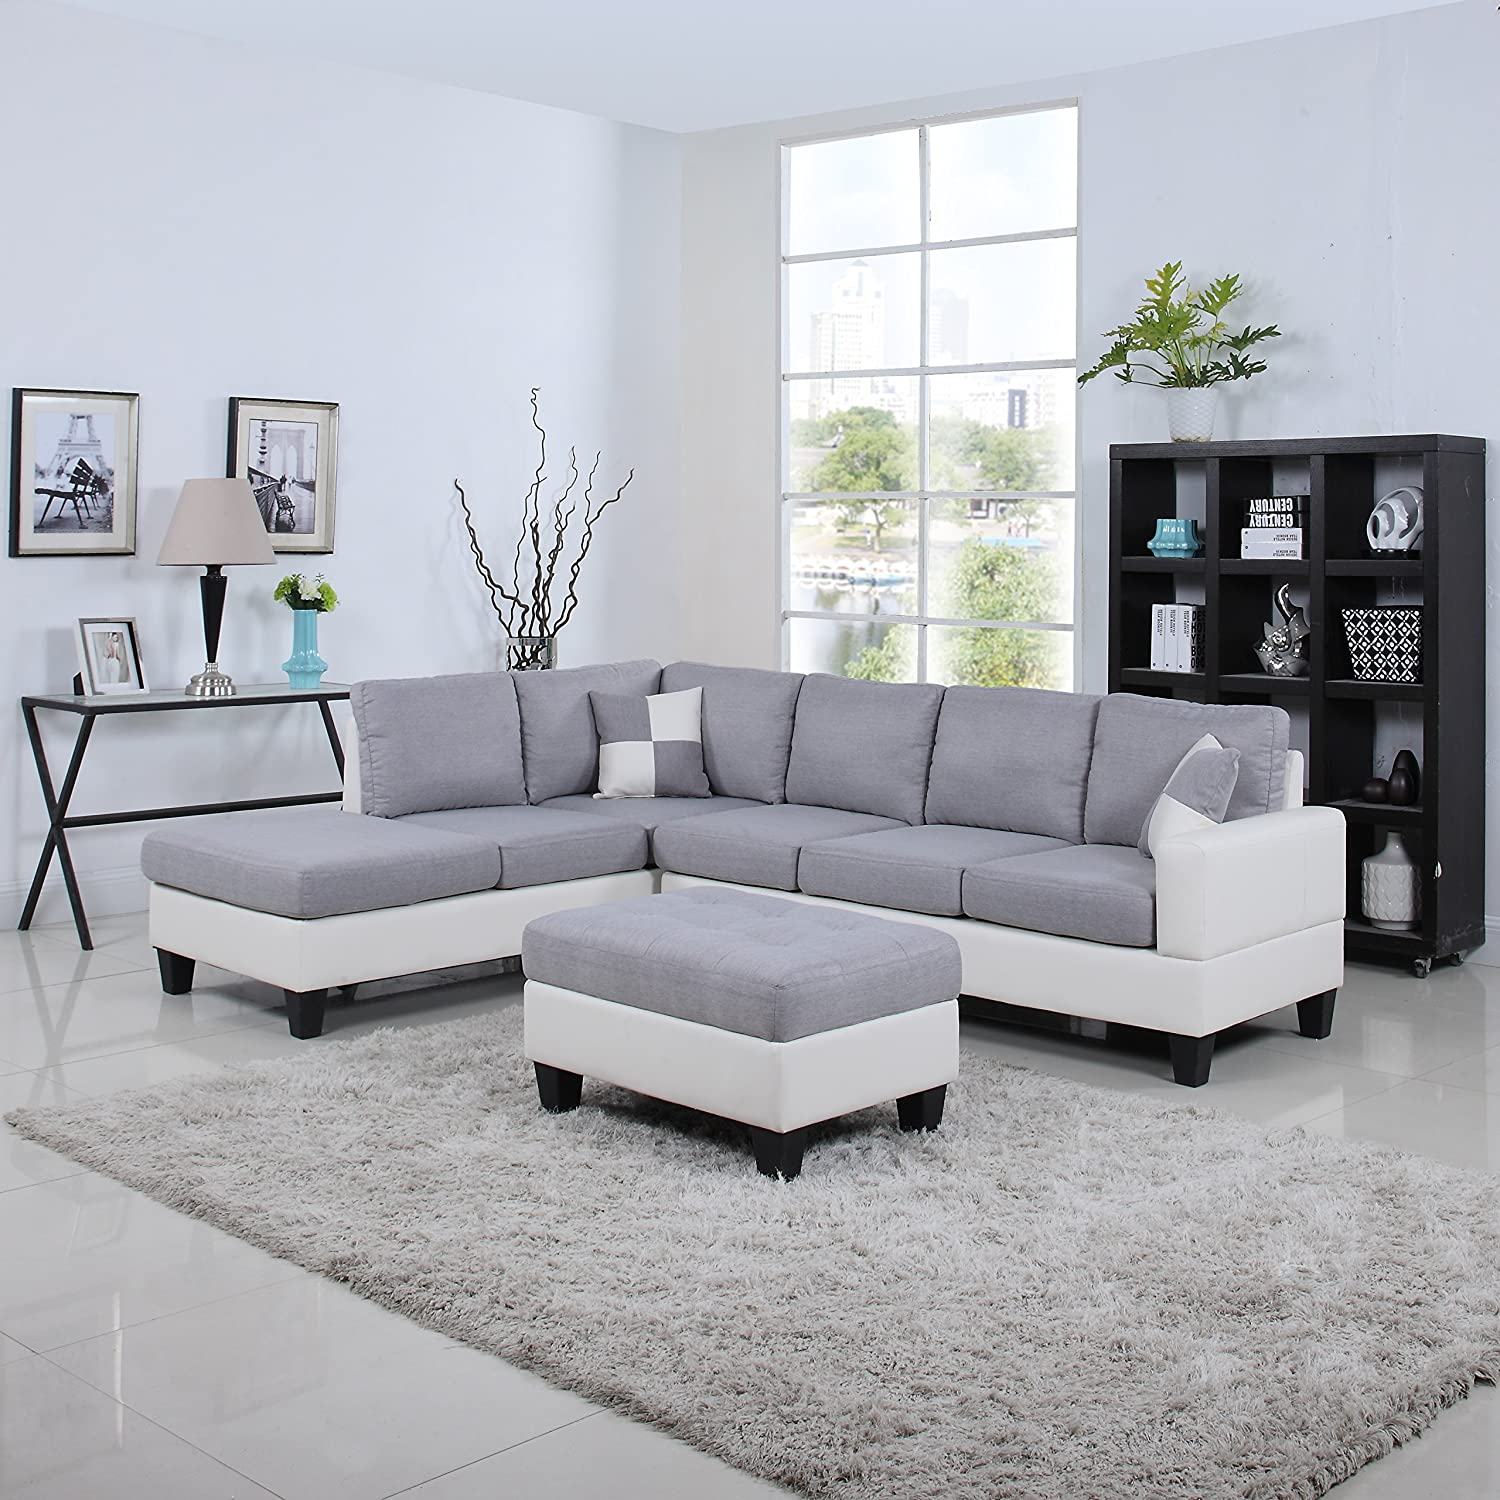 Charmant Amazon.com: Classic Two Tone Large Linen Fabric And Bonded Leather Living  Room Sectional Sofa (White/Light Grey): Kitchen U0026 Dining